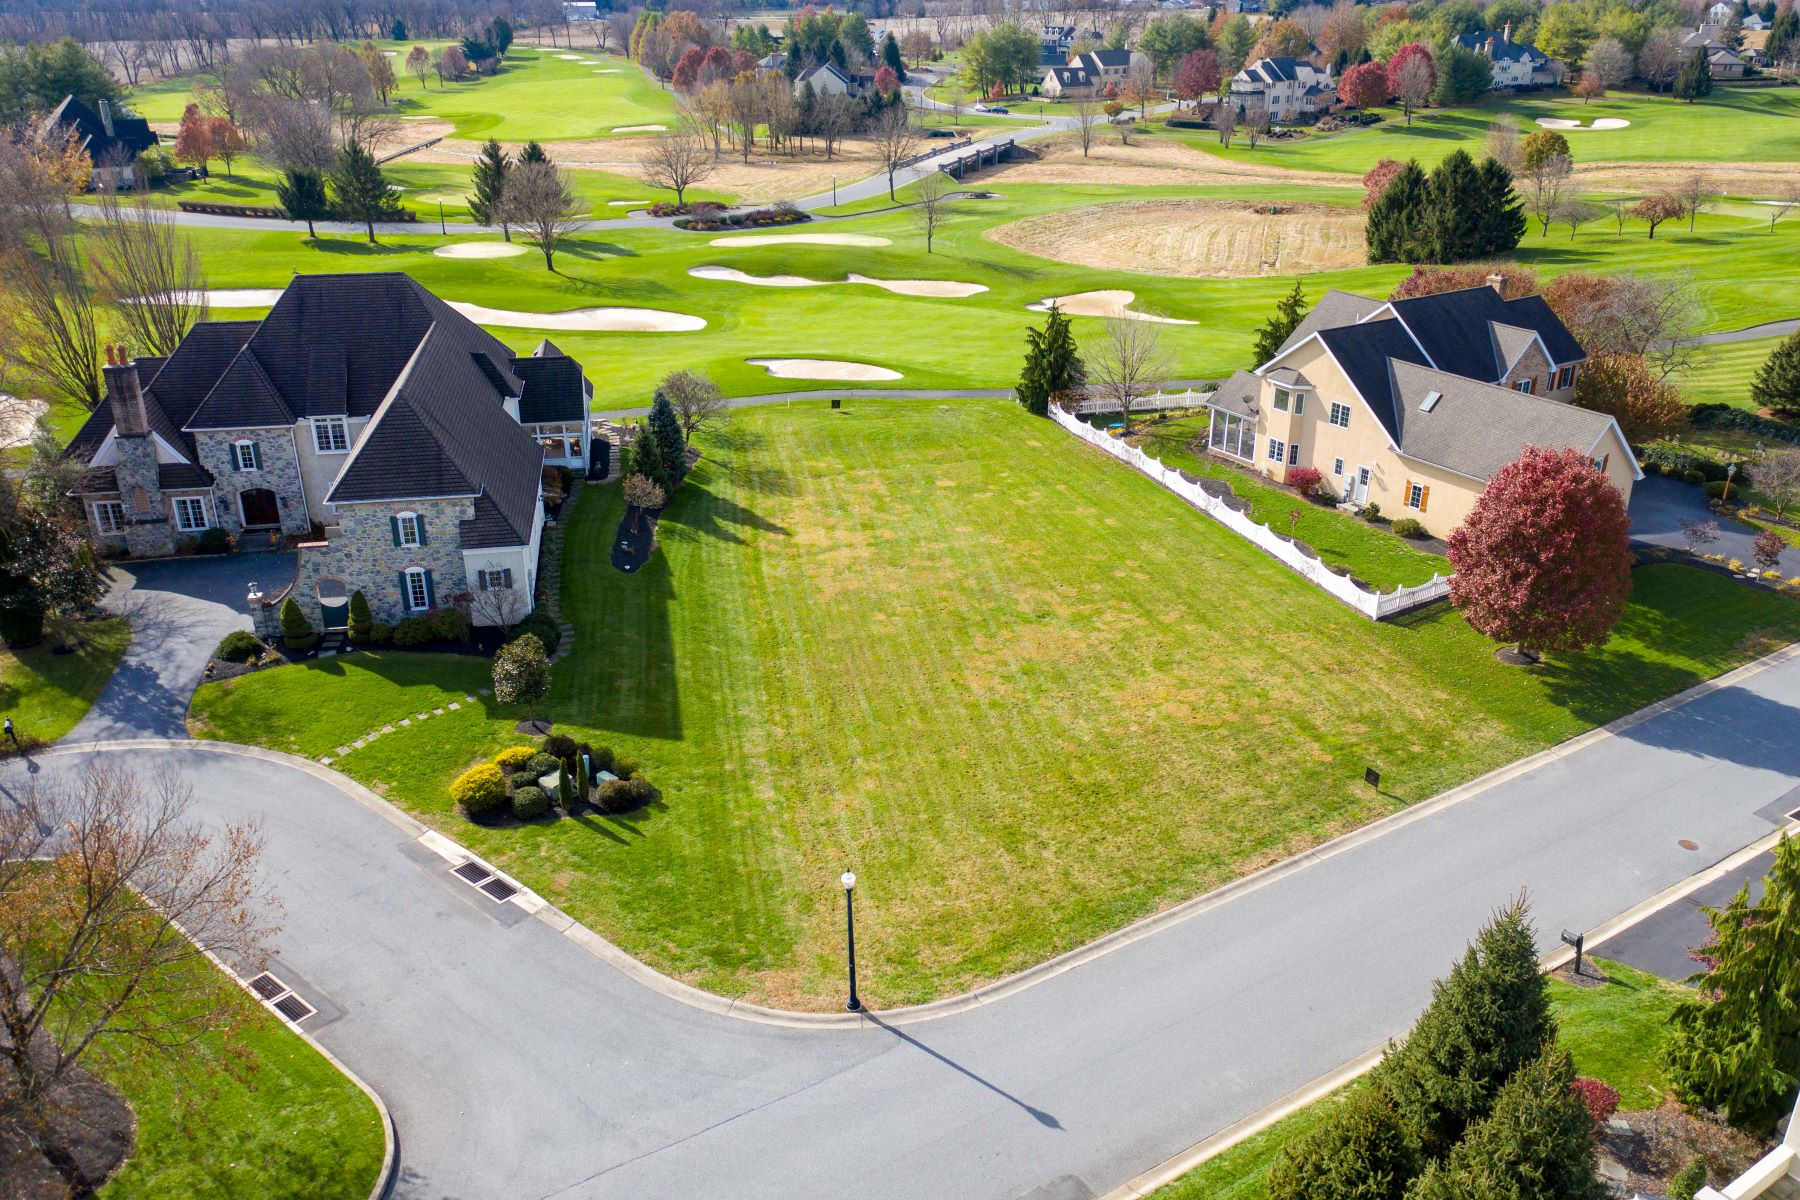 Land for Sale at 668 Goose Neck Drive Lititz, Pennsylvania 17543 United States